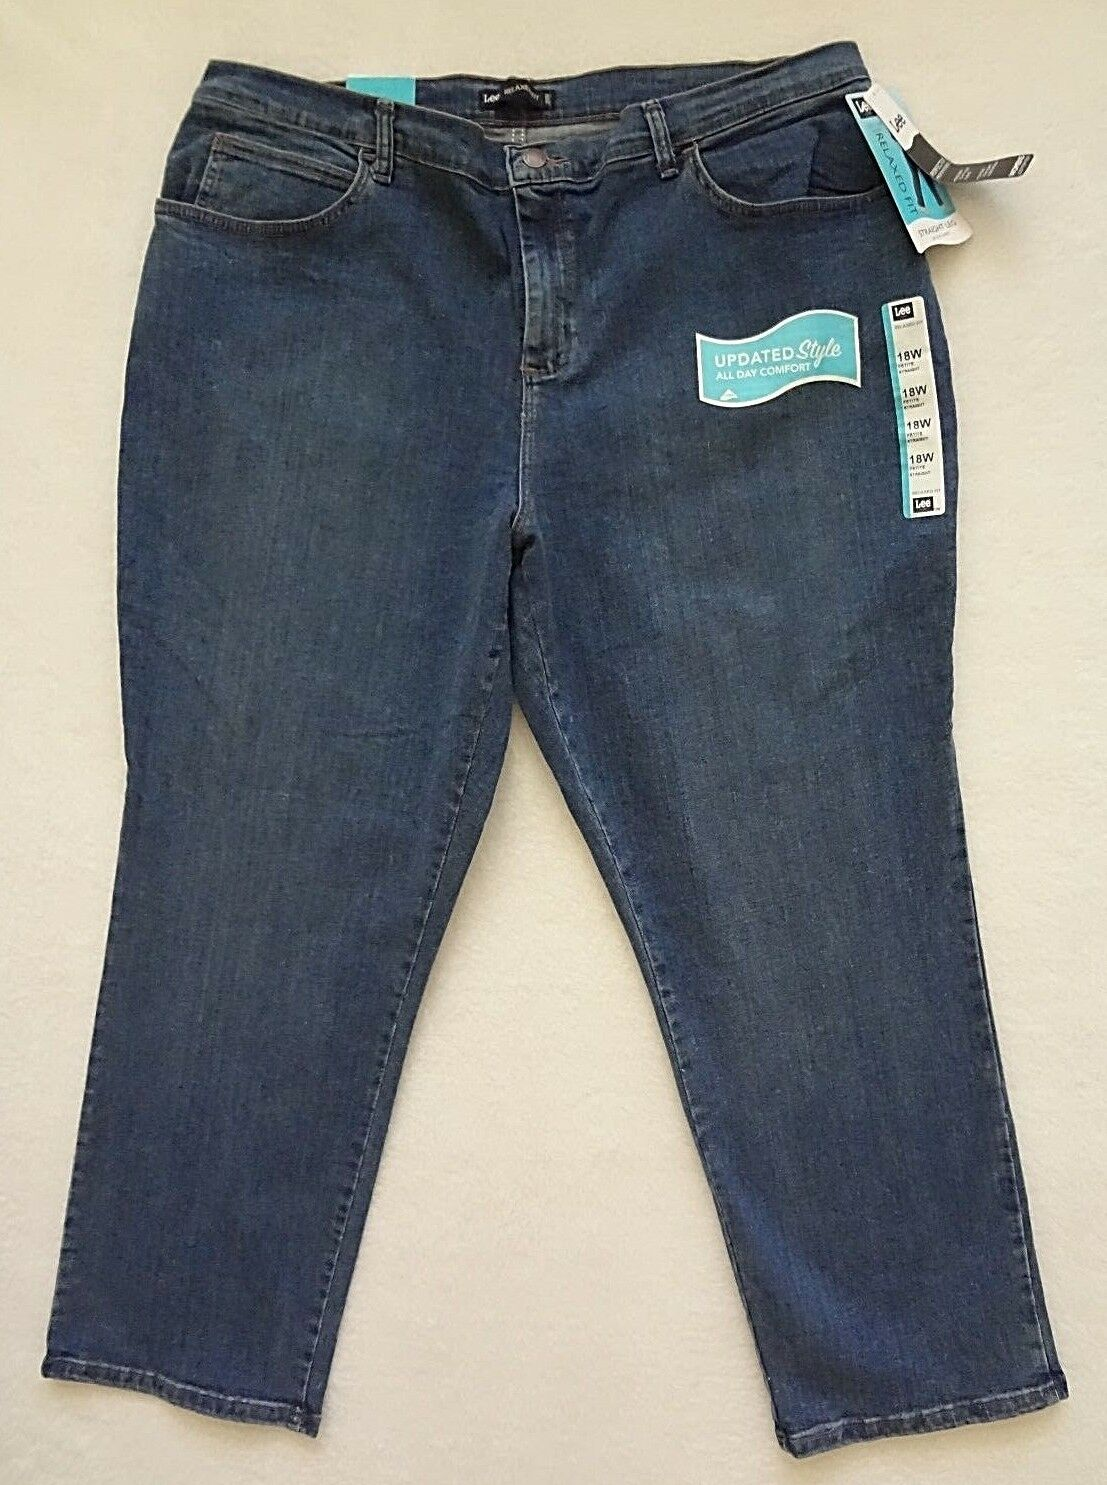 Lee Relaxed Fit Jeans Womens Size 20W Blue Straight Leg